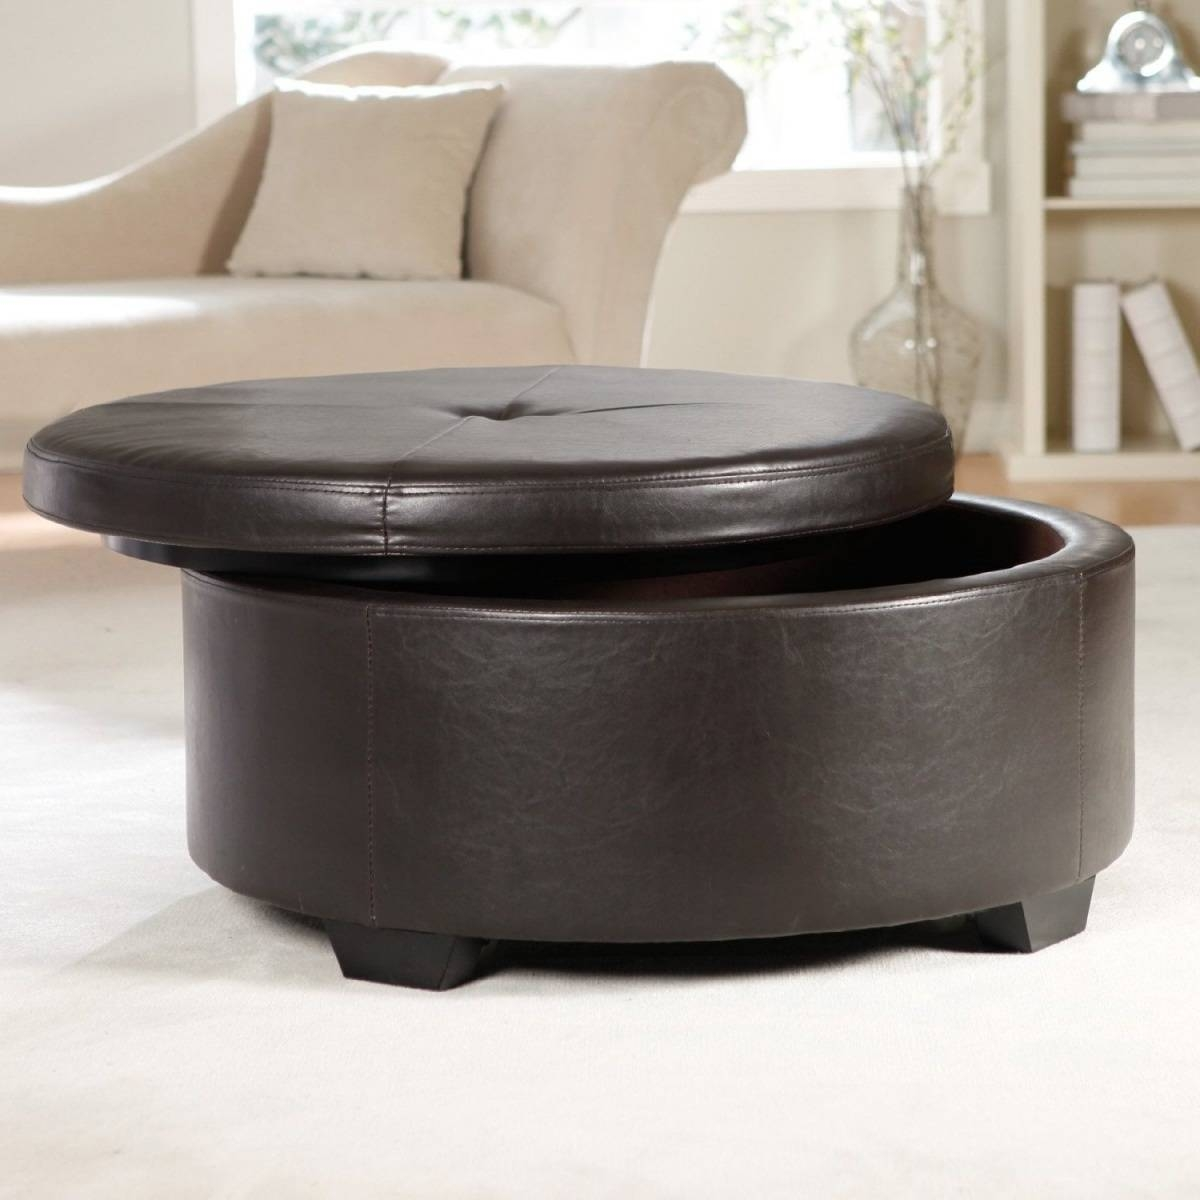 Perfect Coffee Table Storage Ottomans Underneath With Round Upholstered Coffee Tables (View 15 of 30)